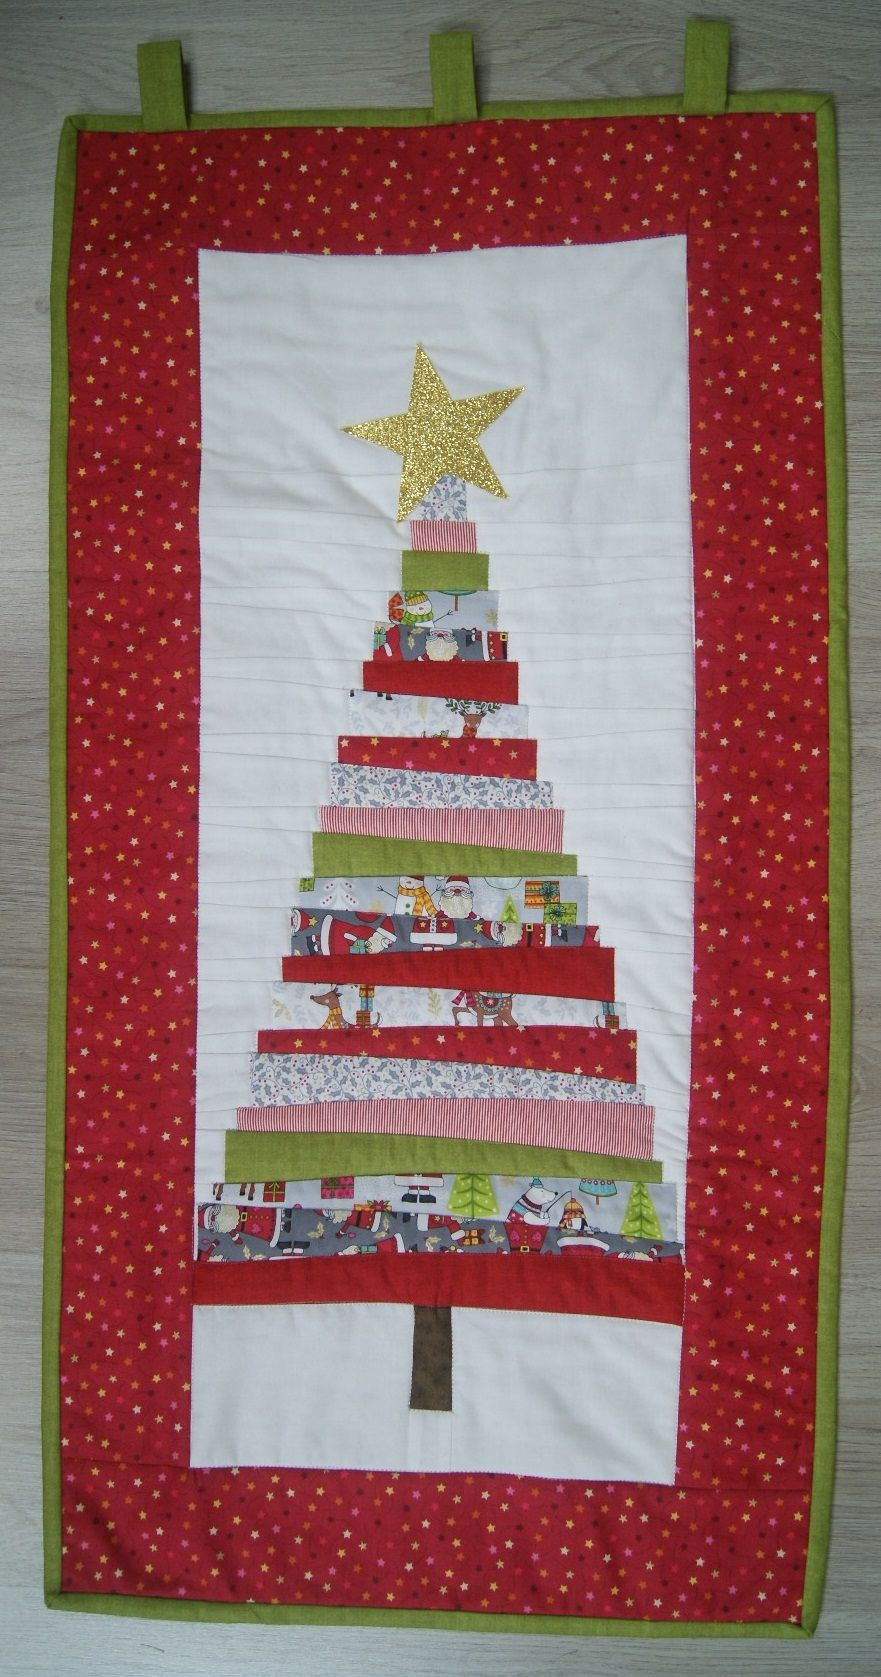 Christmas Tree Wall Hanging Table Runner Saturday 30th November Nimble Thimbles